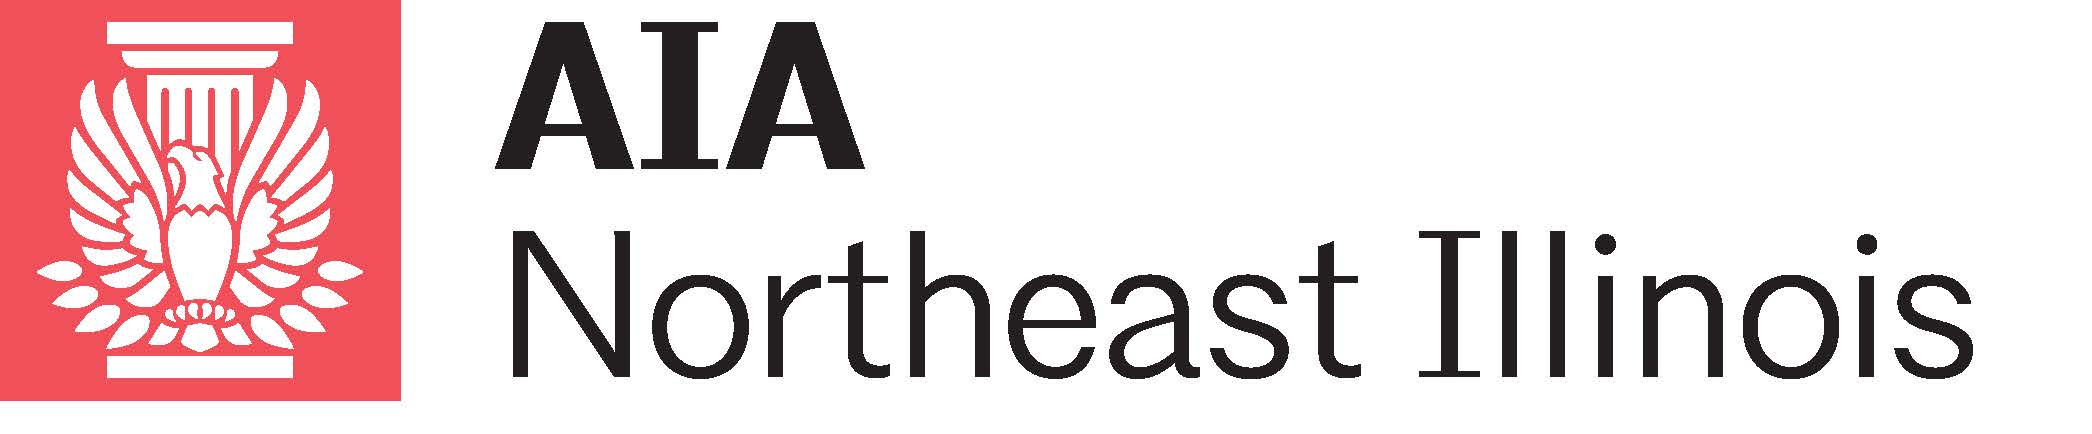 AIA_Northeast_Illinois_logo_PMS